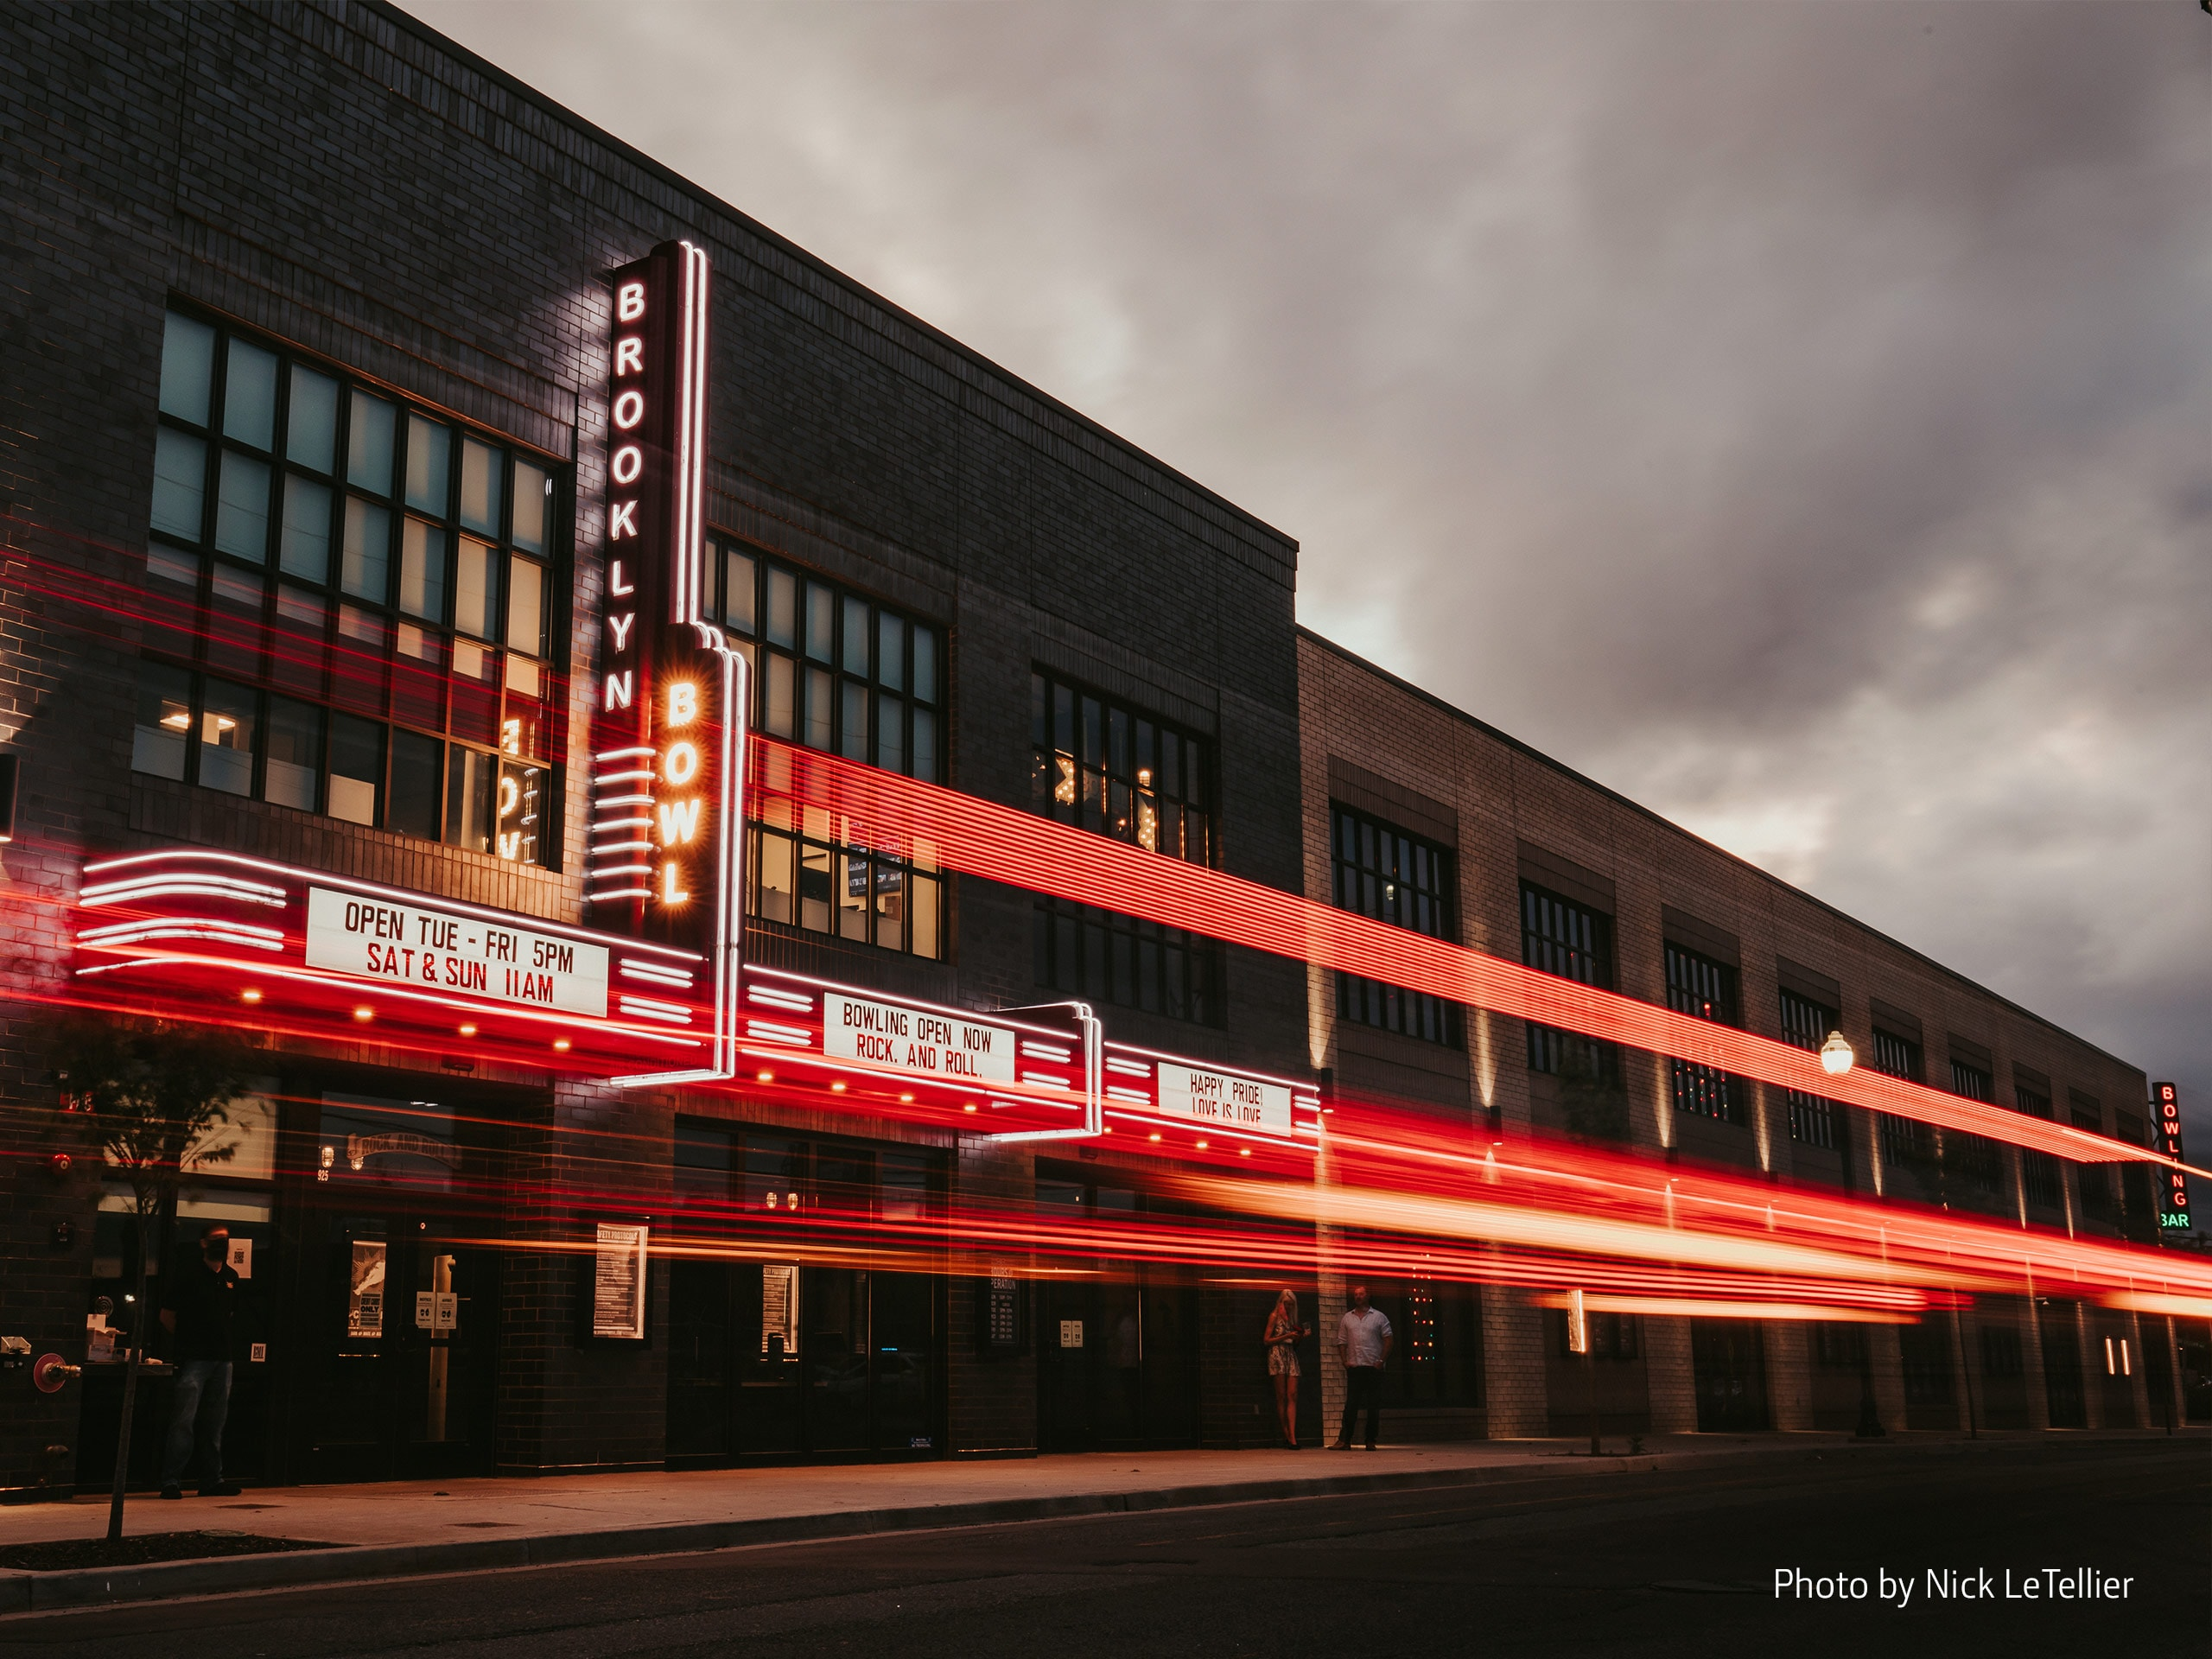 Exterior of the Brooklyn Bowl in Nashville with red neon lights